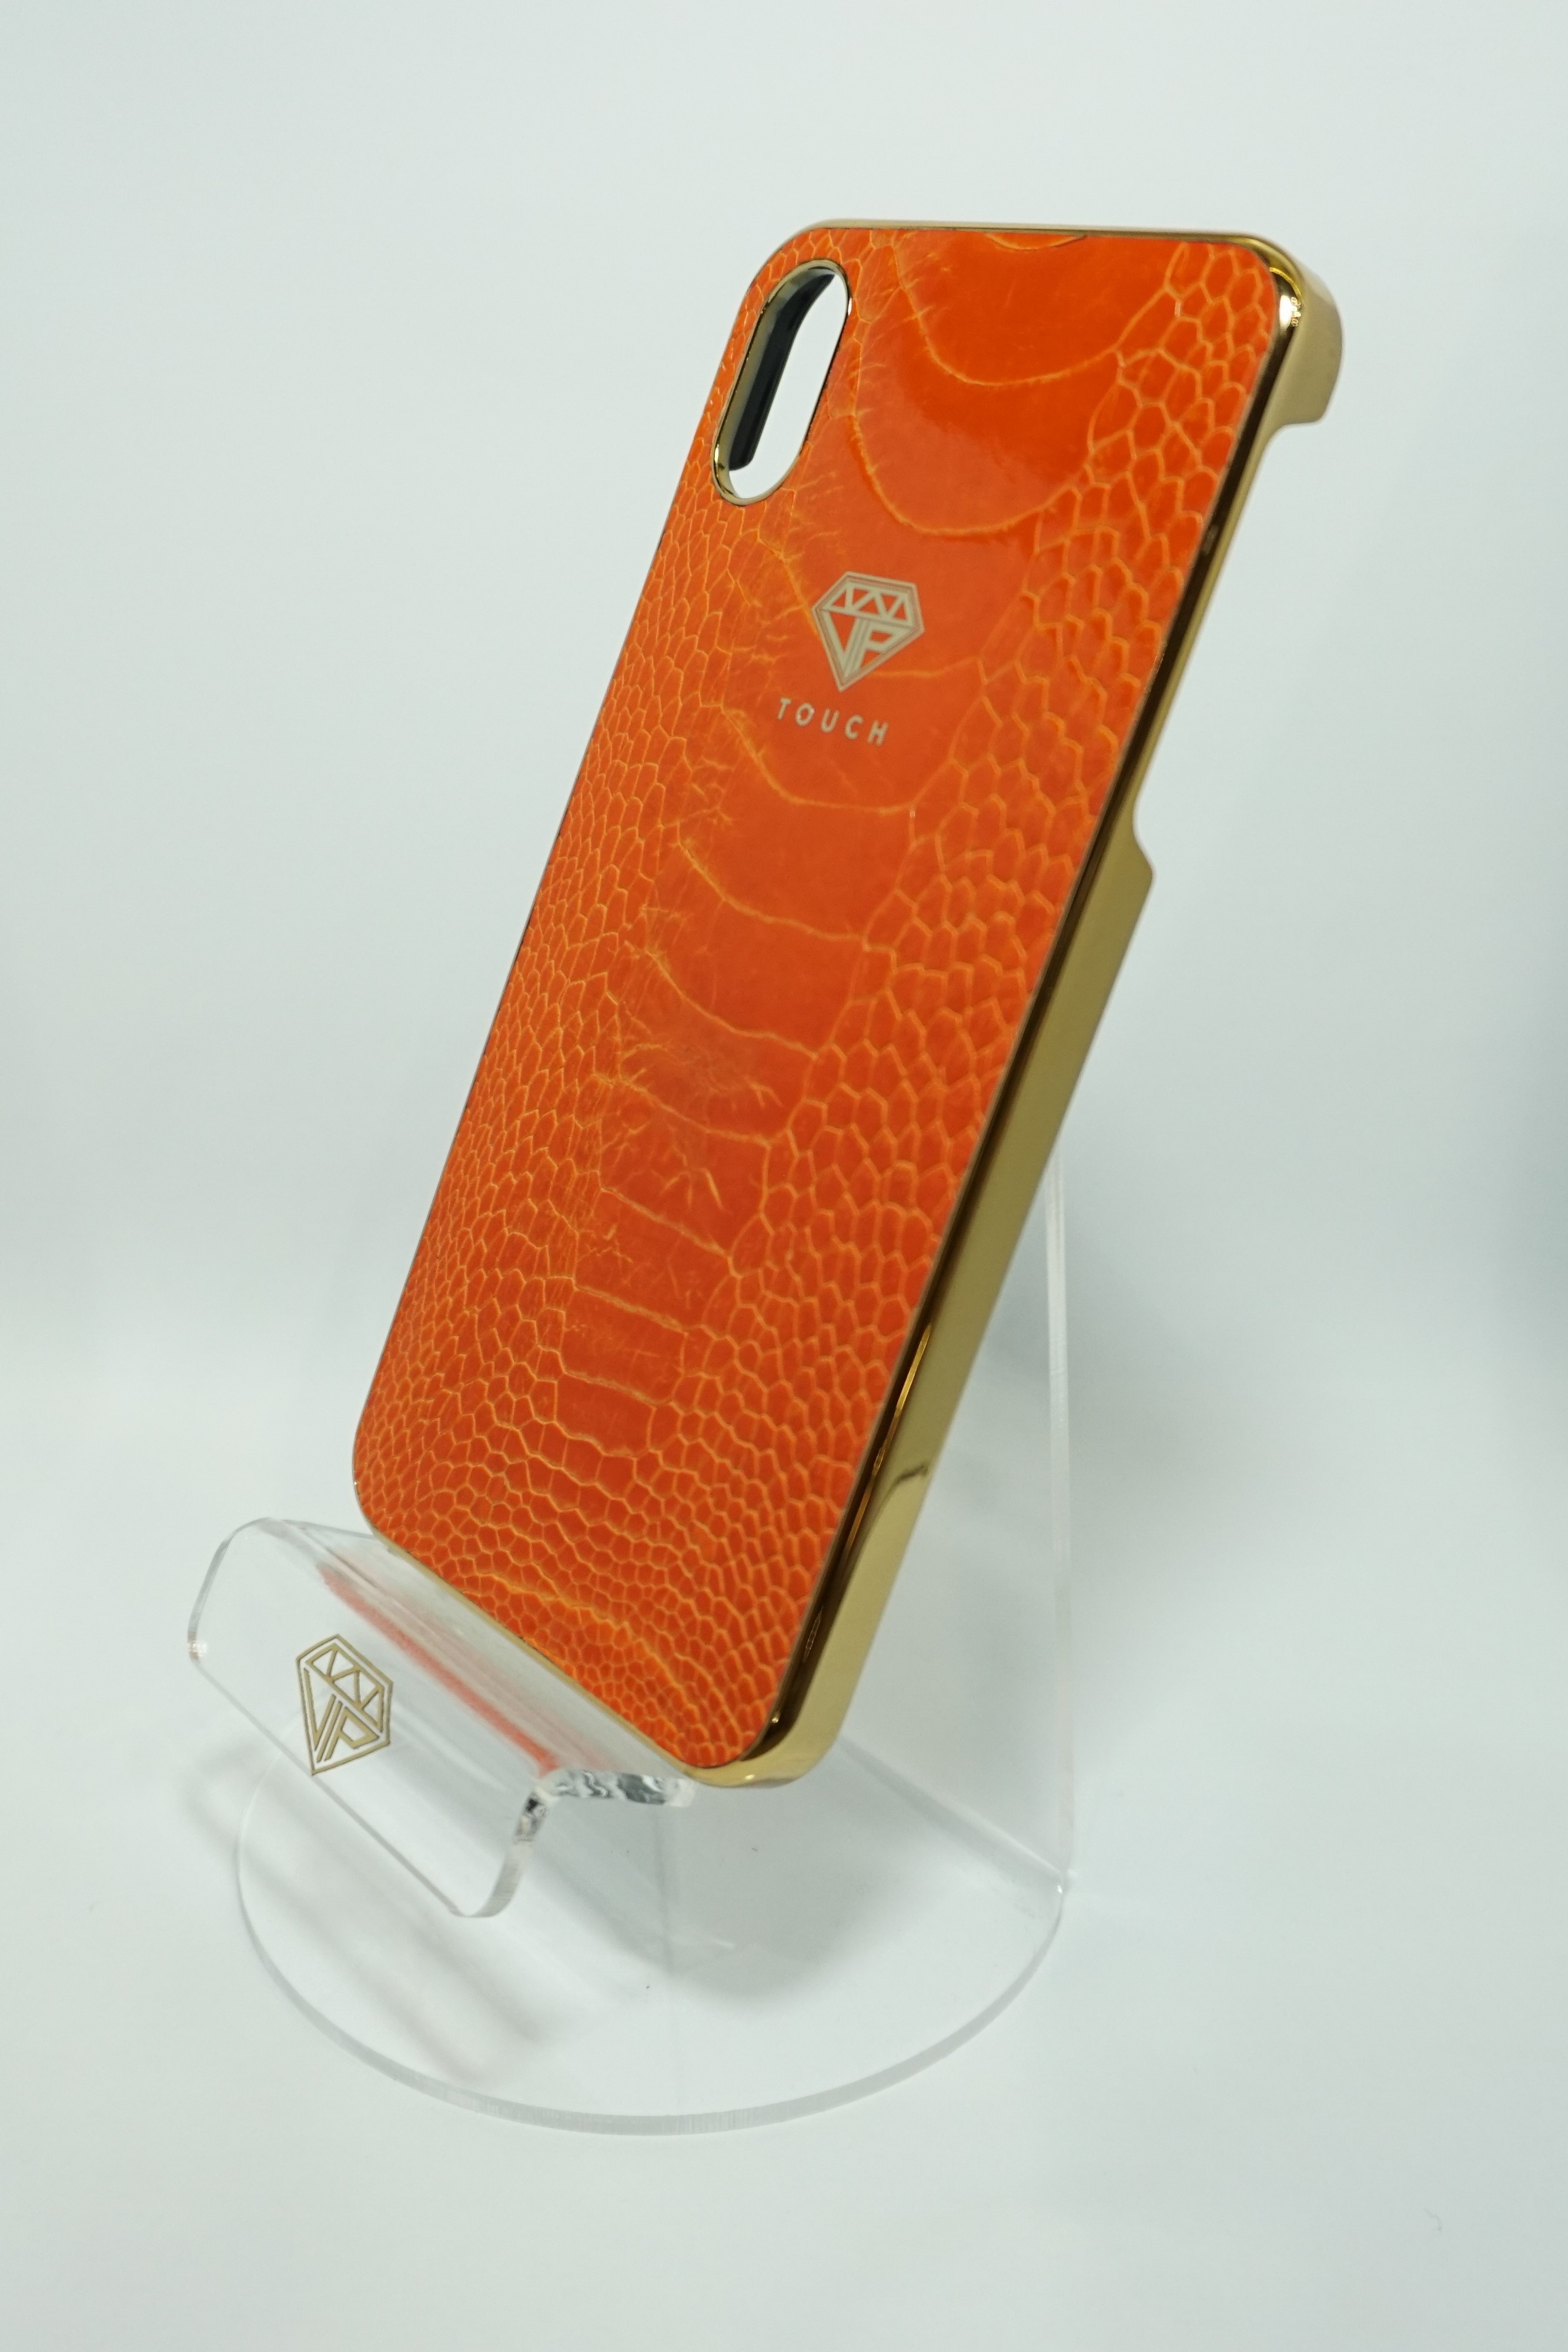 24kt GOLD & ORANGE OSTRICH LEATHER IPHONE CASE